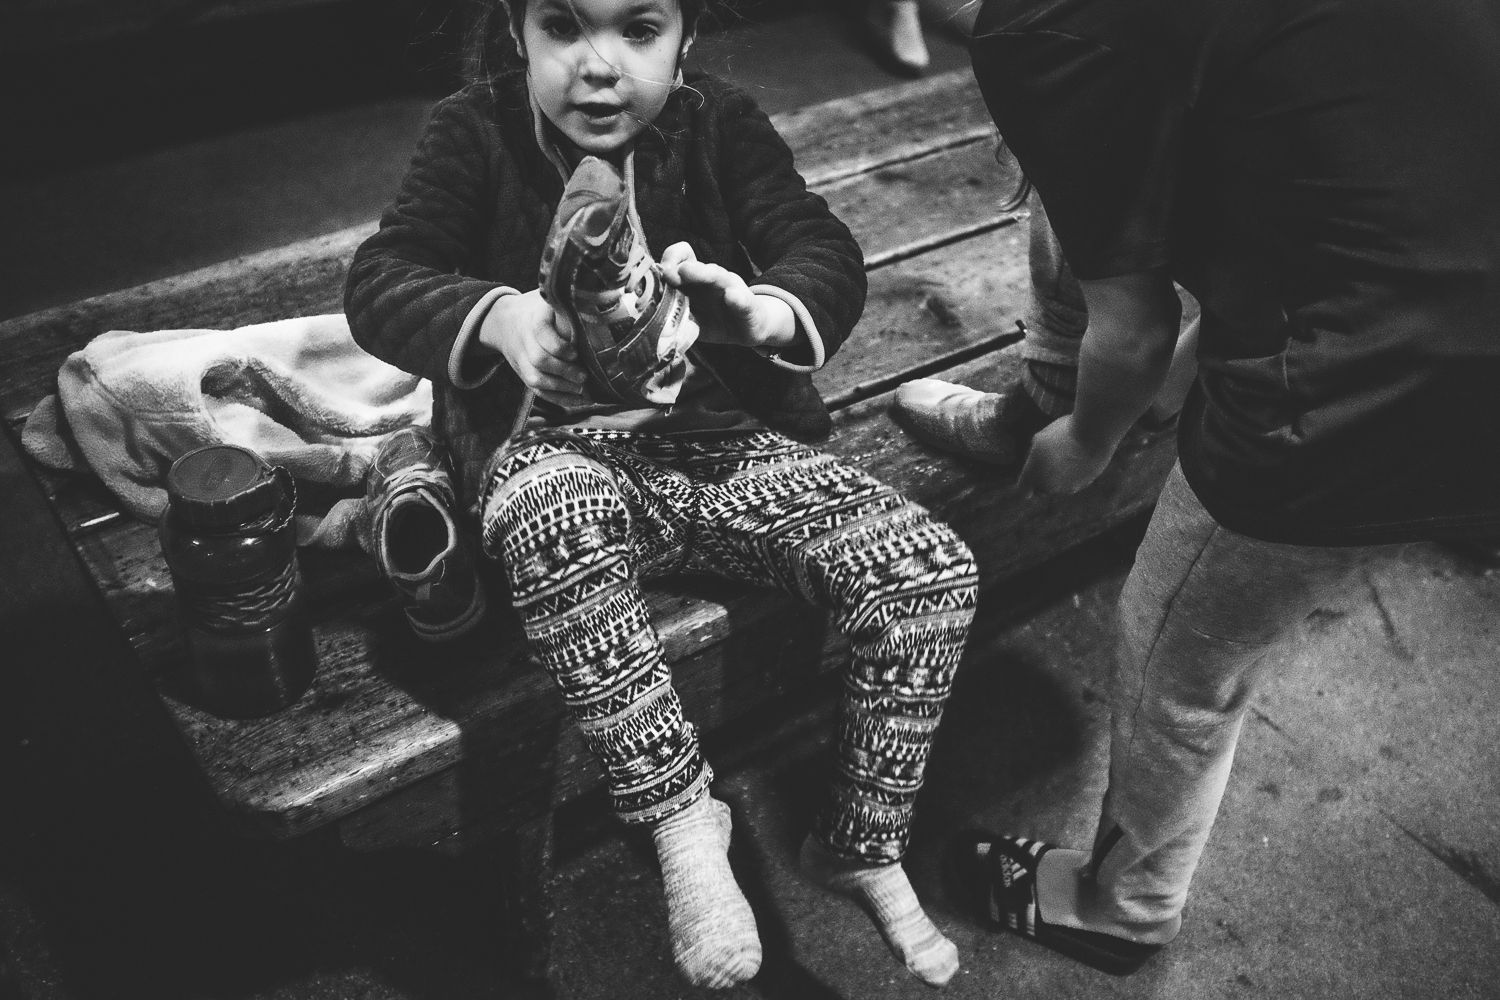 young child putting on her shoes after removing her skates